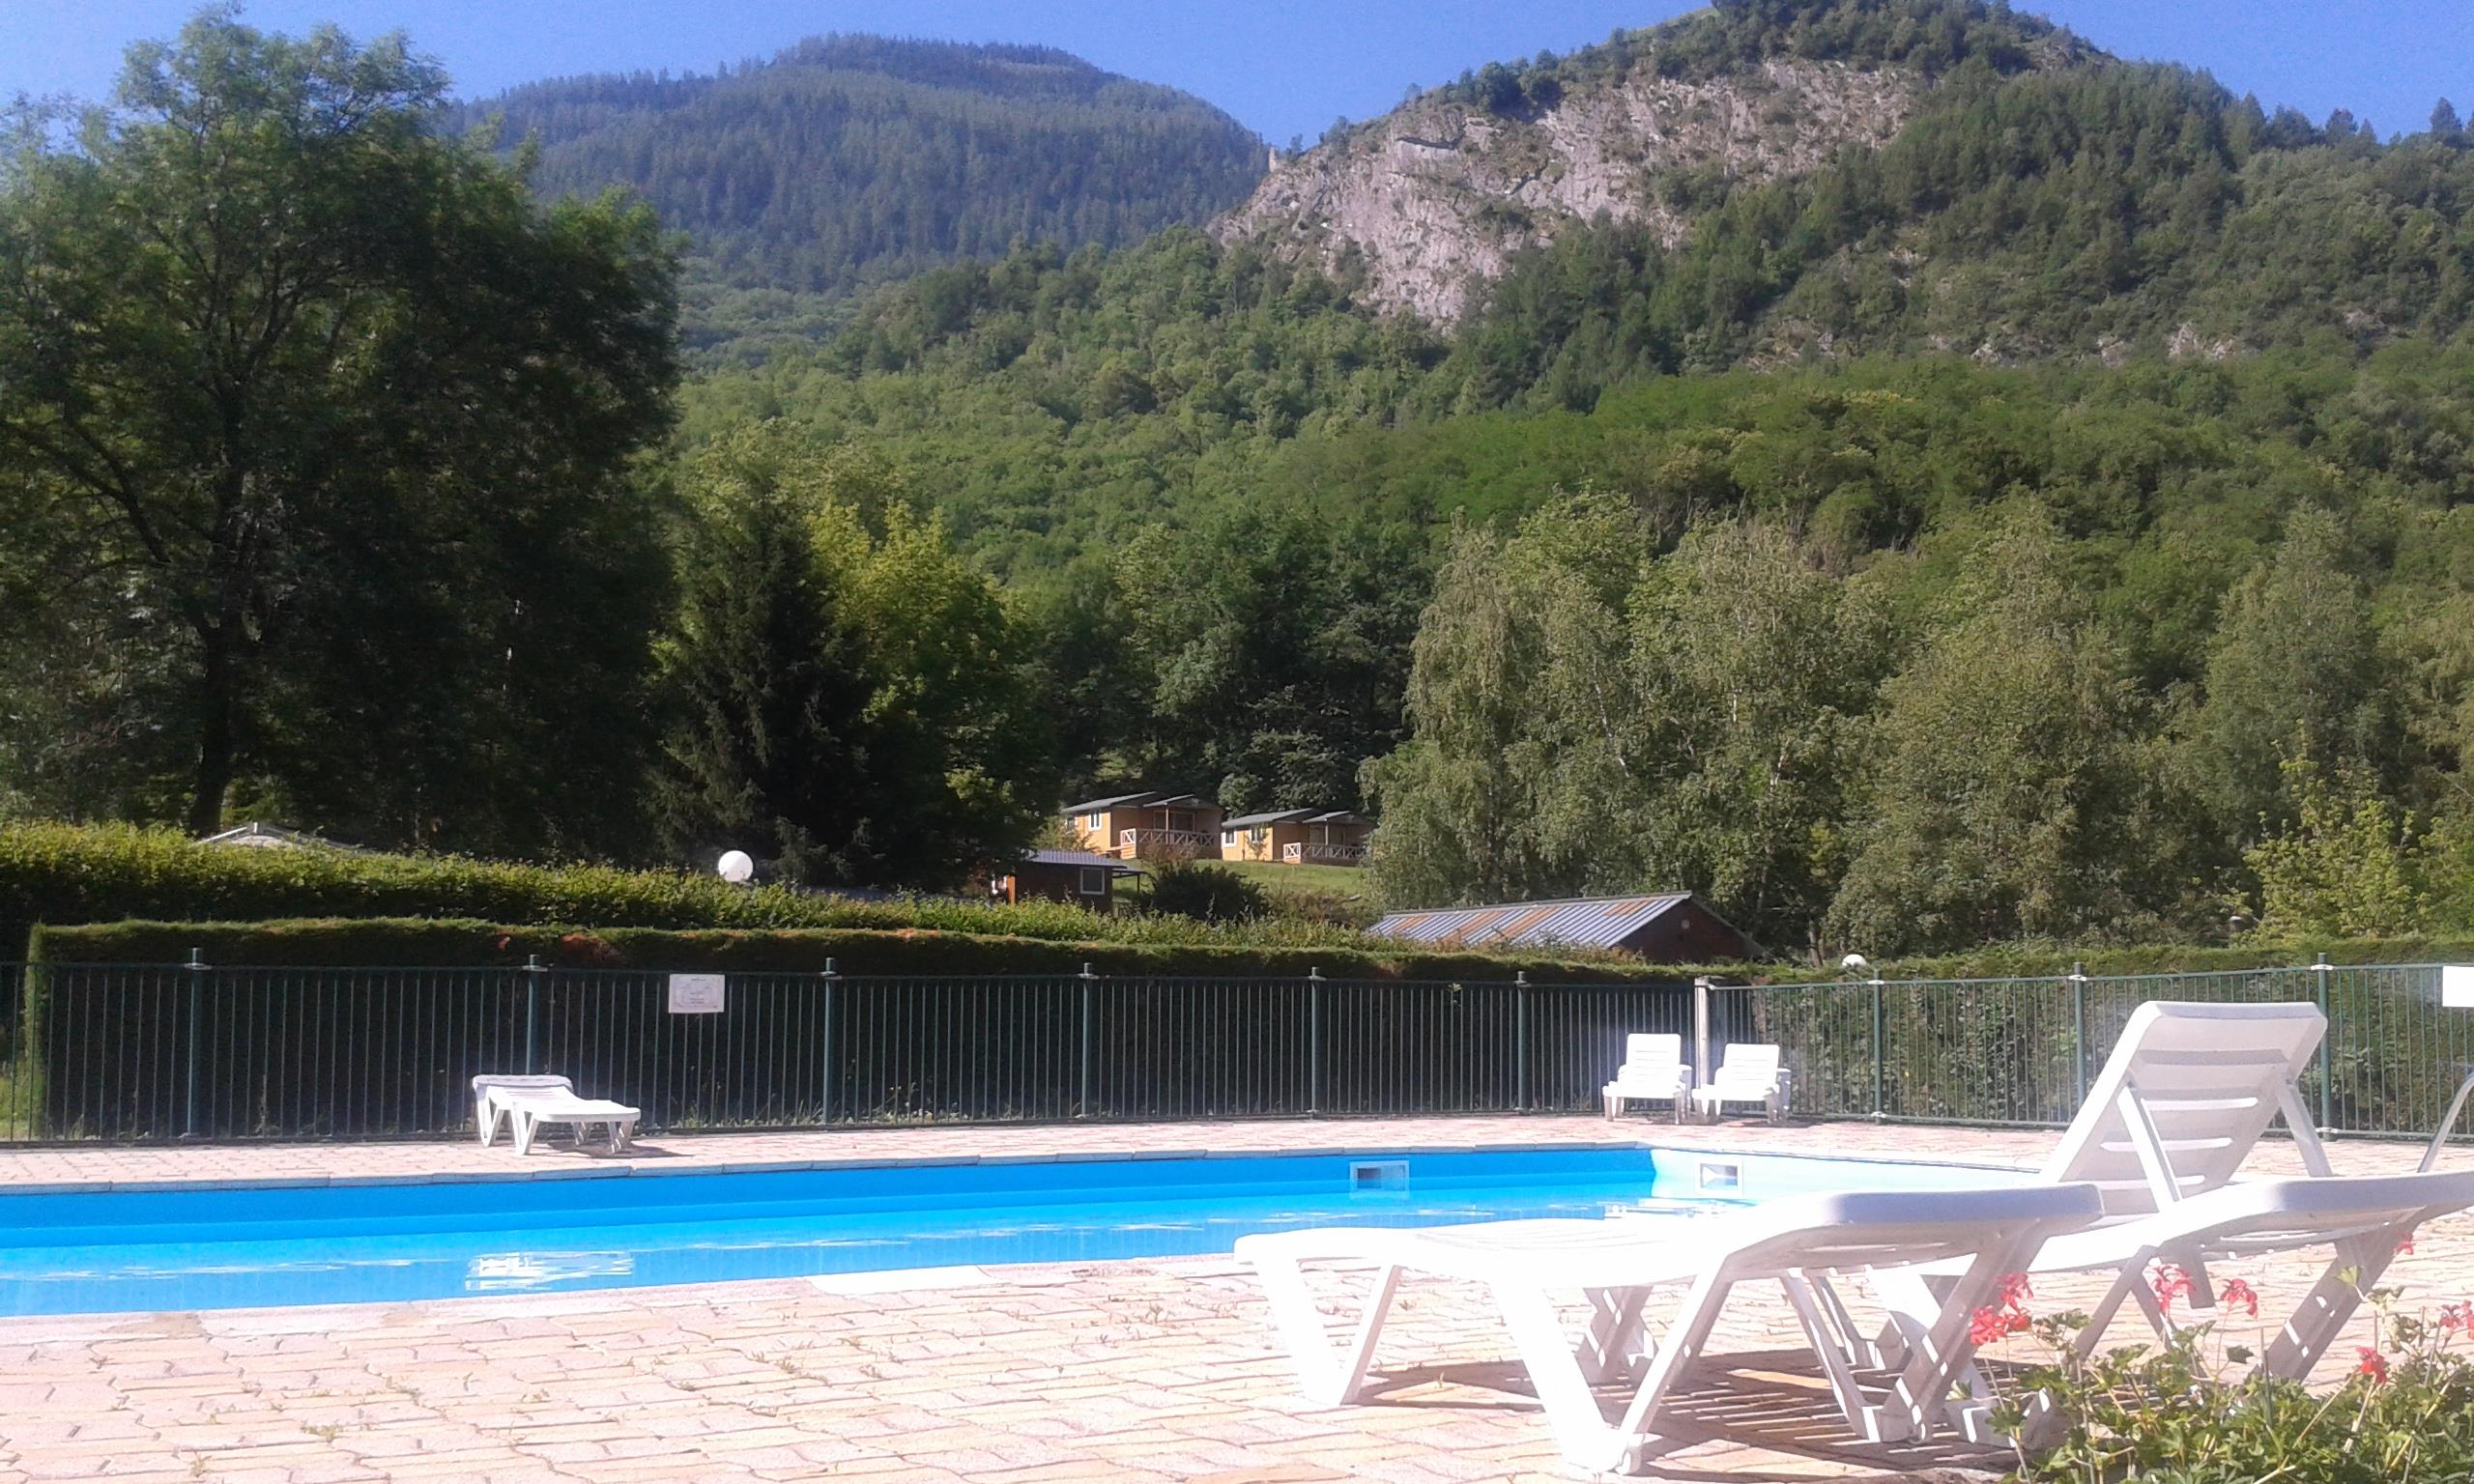 Bathing Flower Camping La Bexanelle - Vicdessos